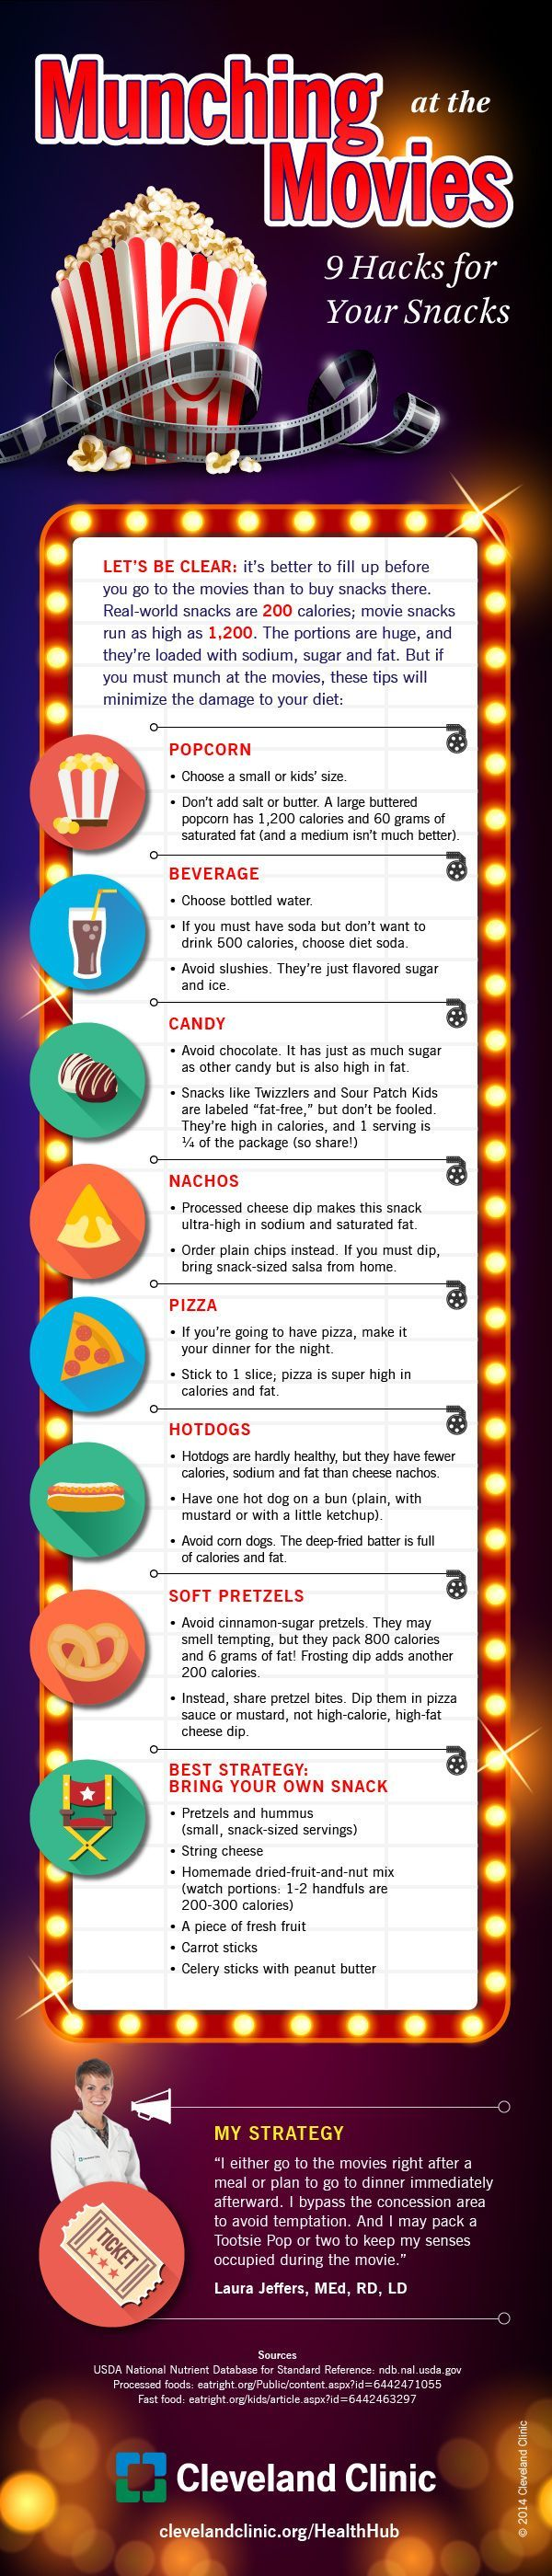 9 Hacks for Your Movie Snacks